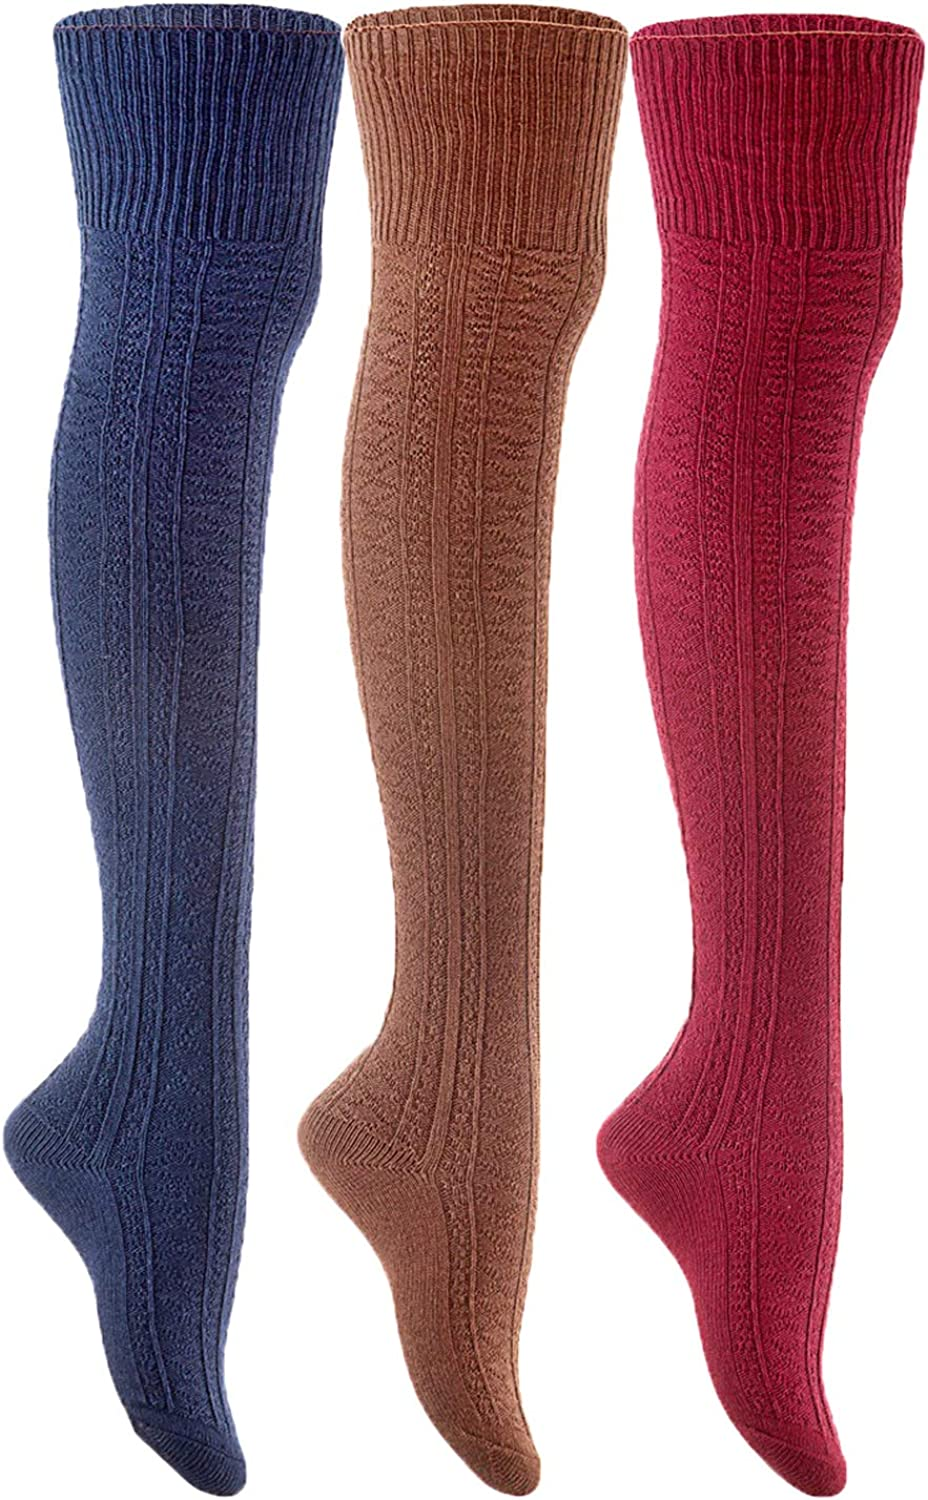 Lian LifeStyle Fashionable and Adorable Women's 3 Pairs Thigh High Cotton Socks For Everyday Relaxed Feet Size 6-9 LLS1025(Navy,Coffee,Wine)